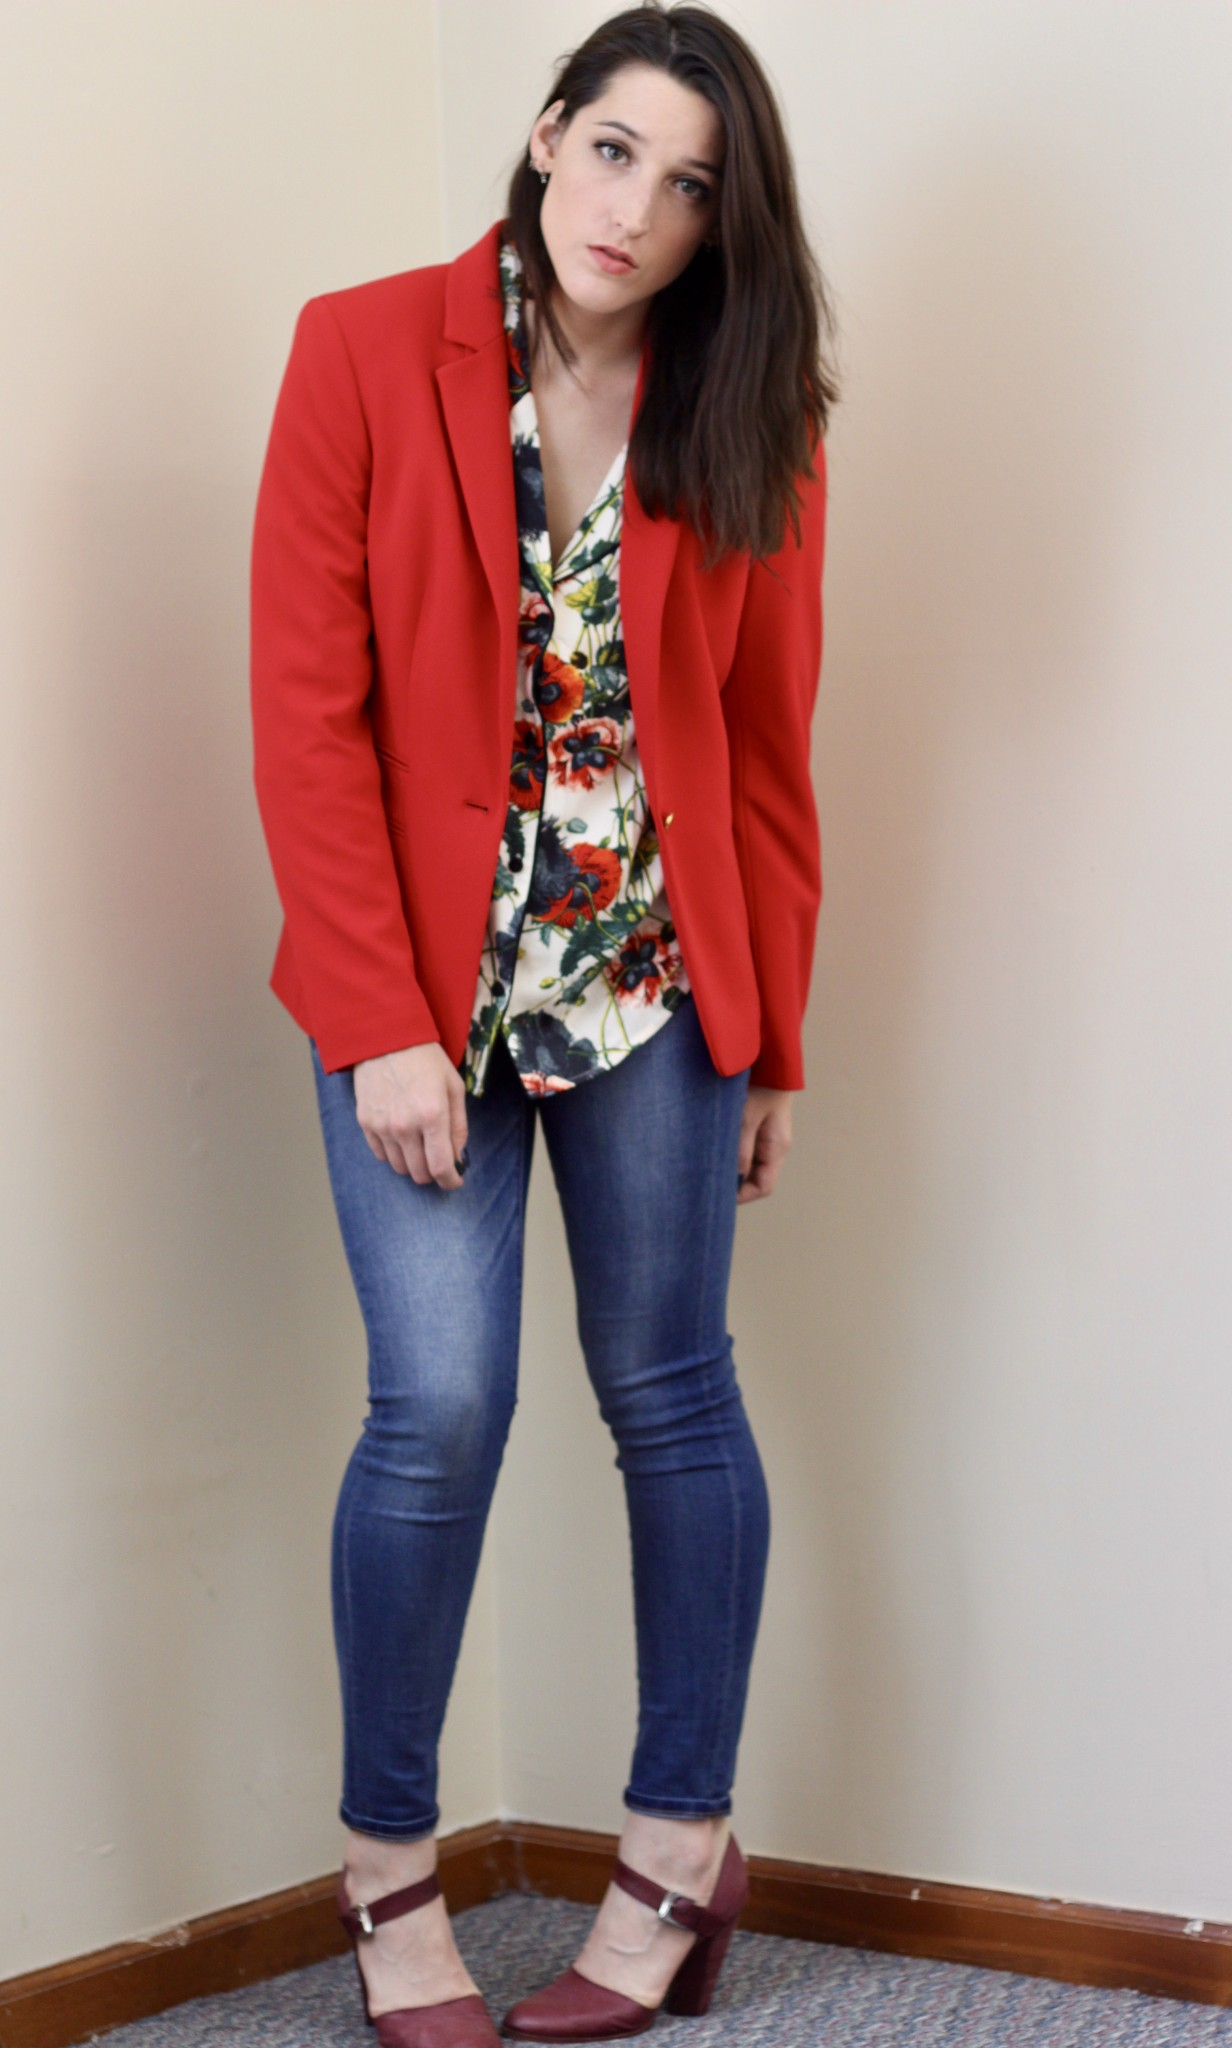 Red All Over - How To Style Red - How She Styles